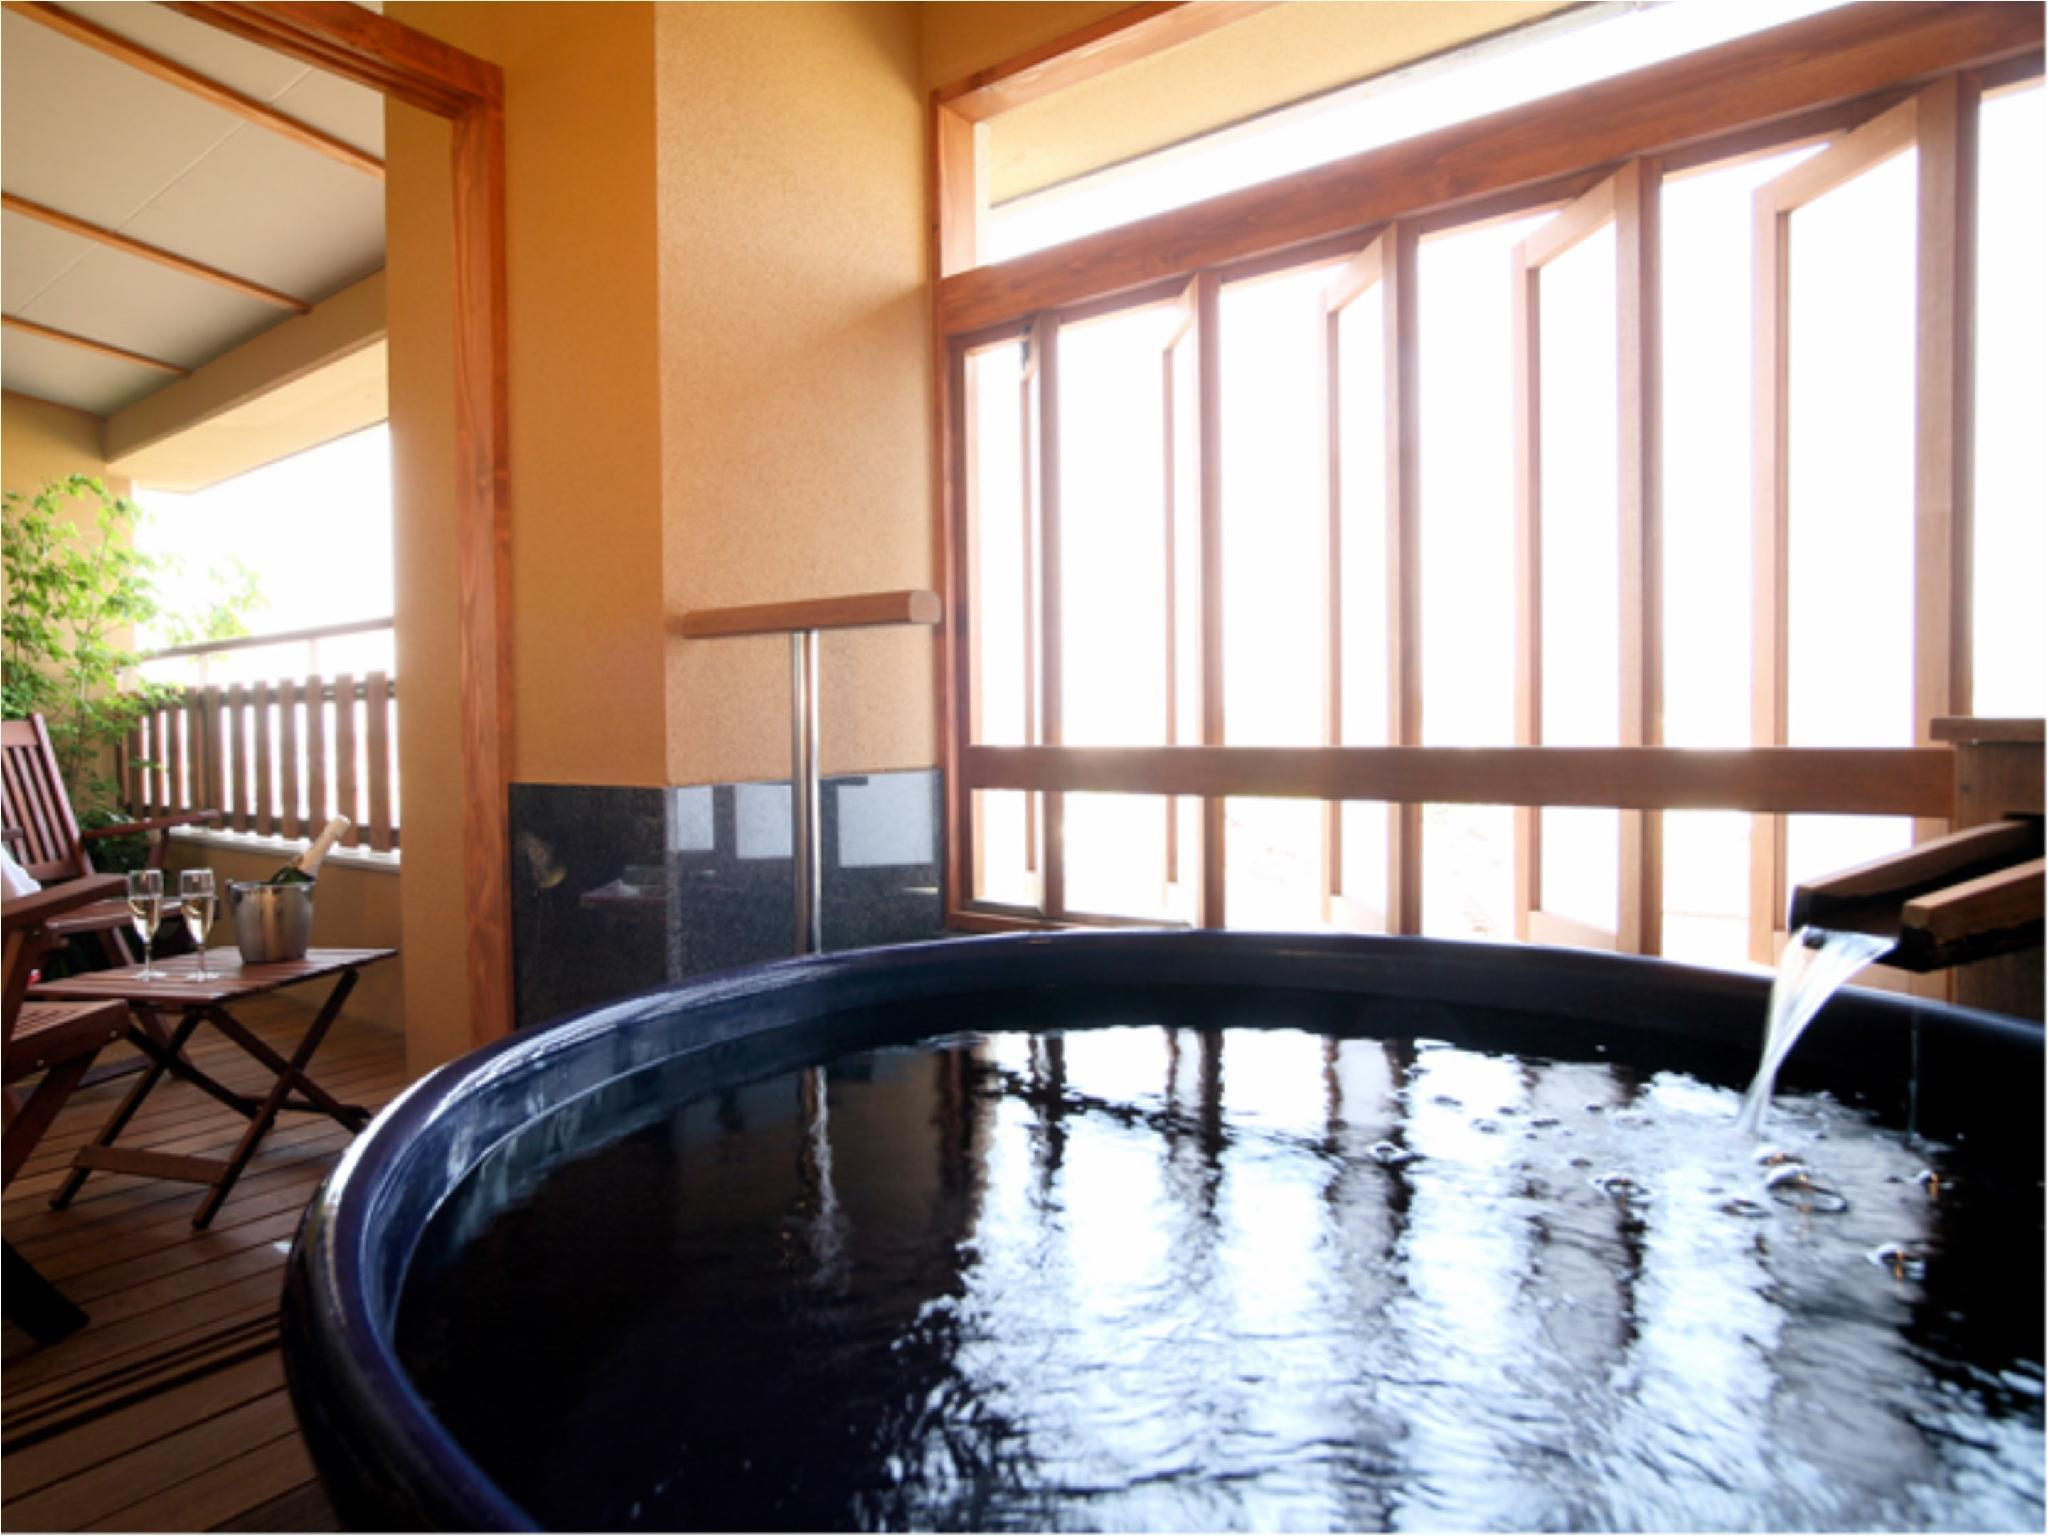 【星の棟 露天付 Aタイプ】スイート 和洋室(禁煙) (Japanese/Western-style Suite with Open-air Bath (Type A, Hoshi-no-To Wing))